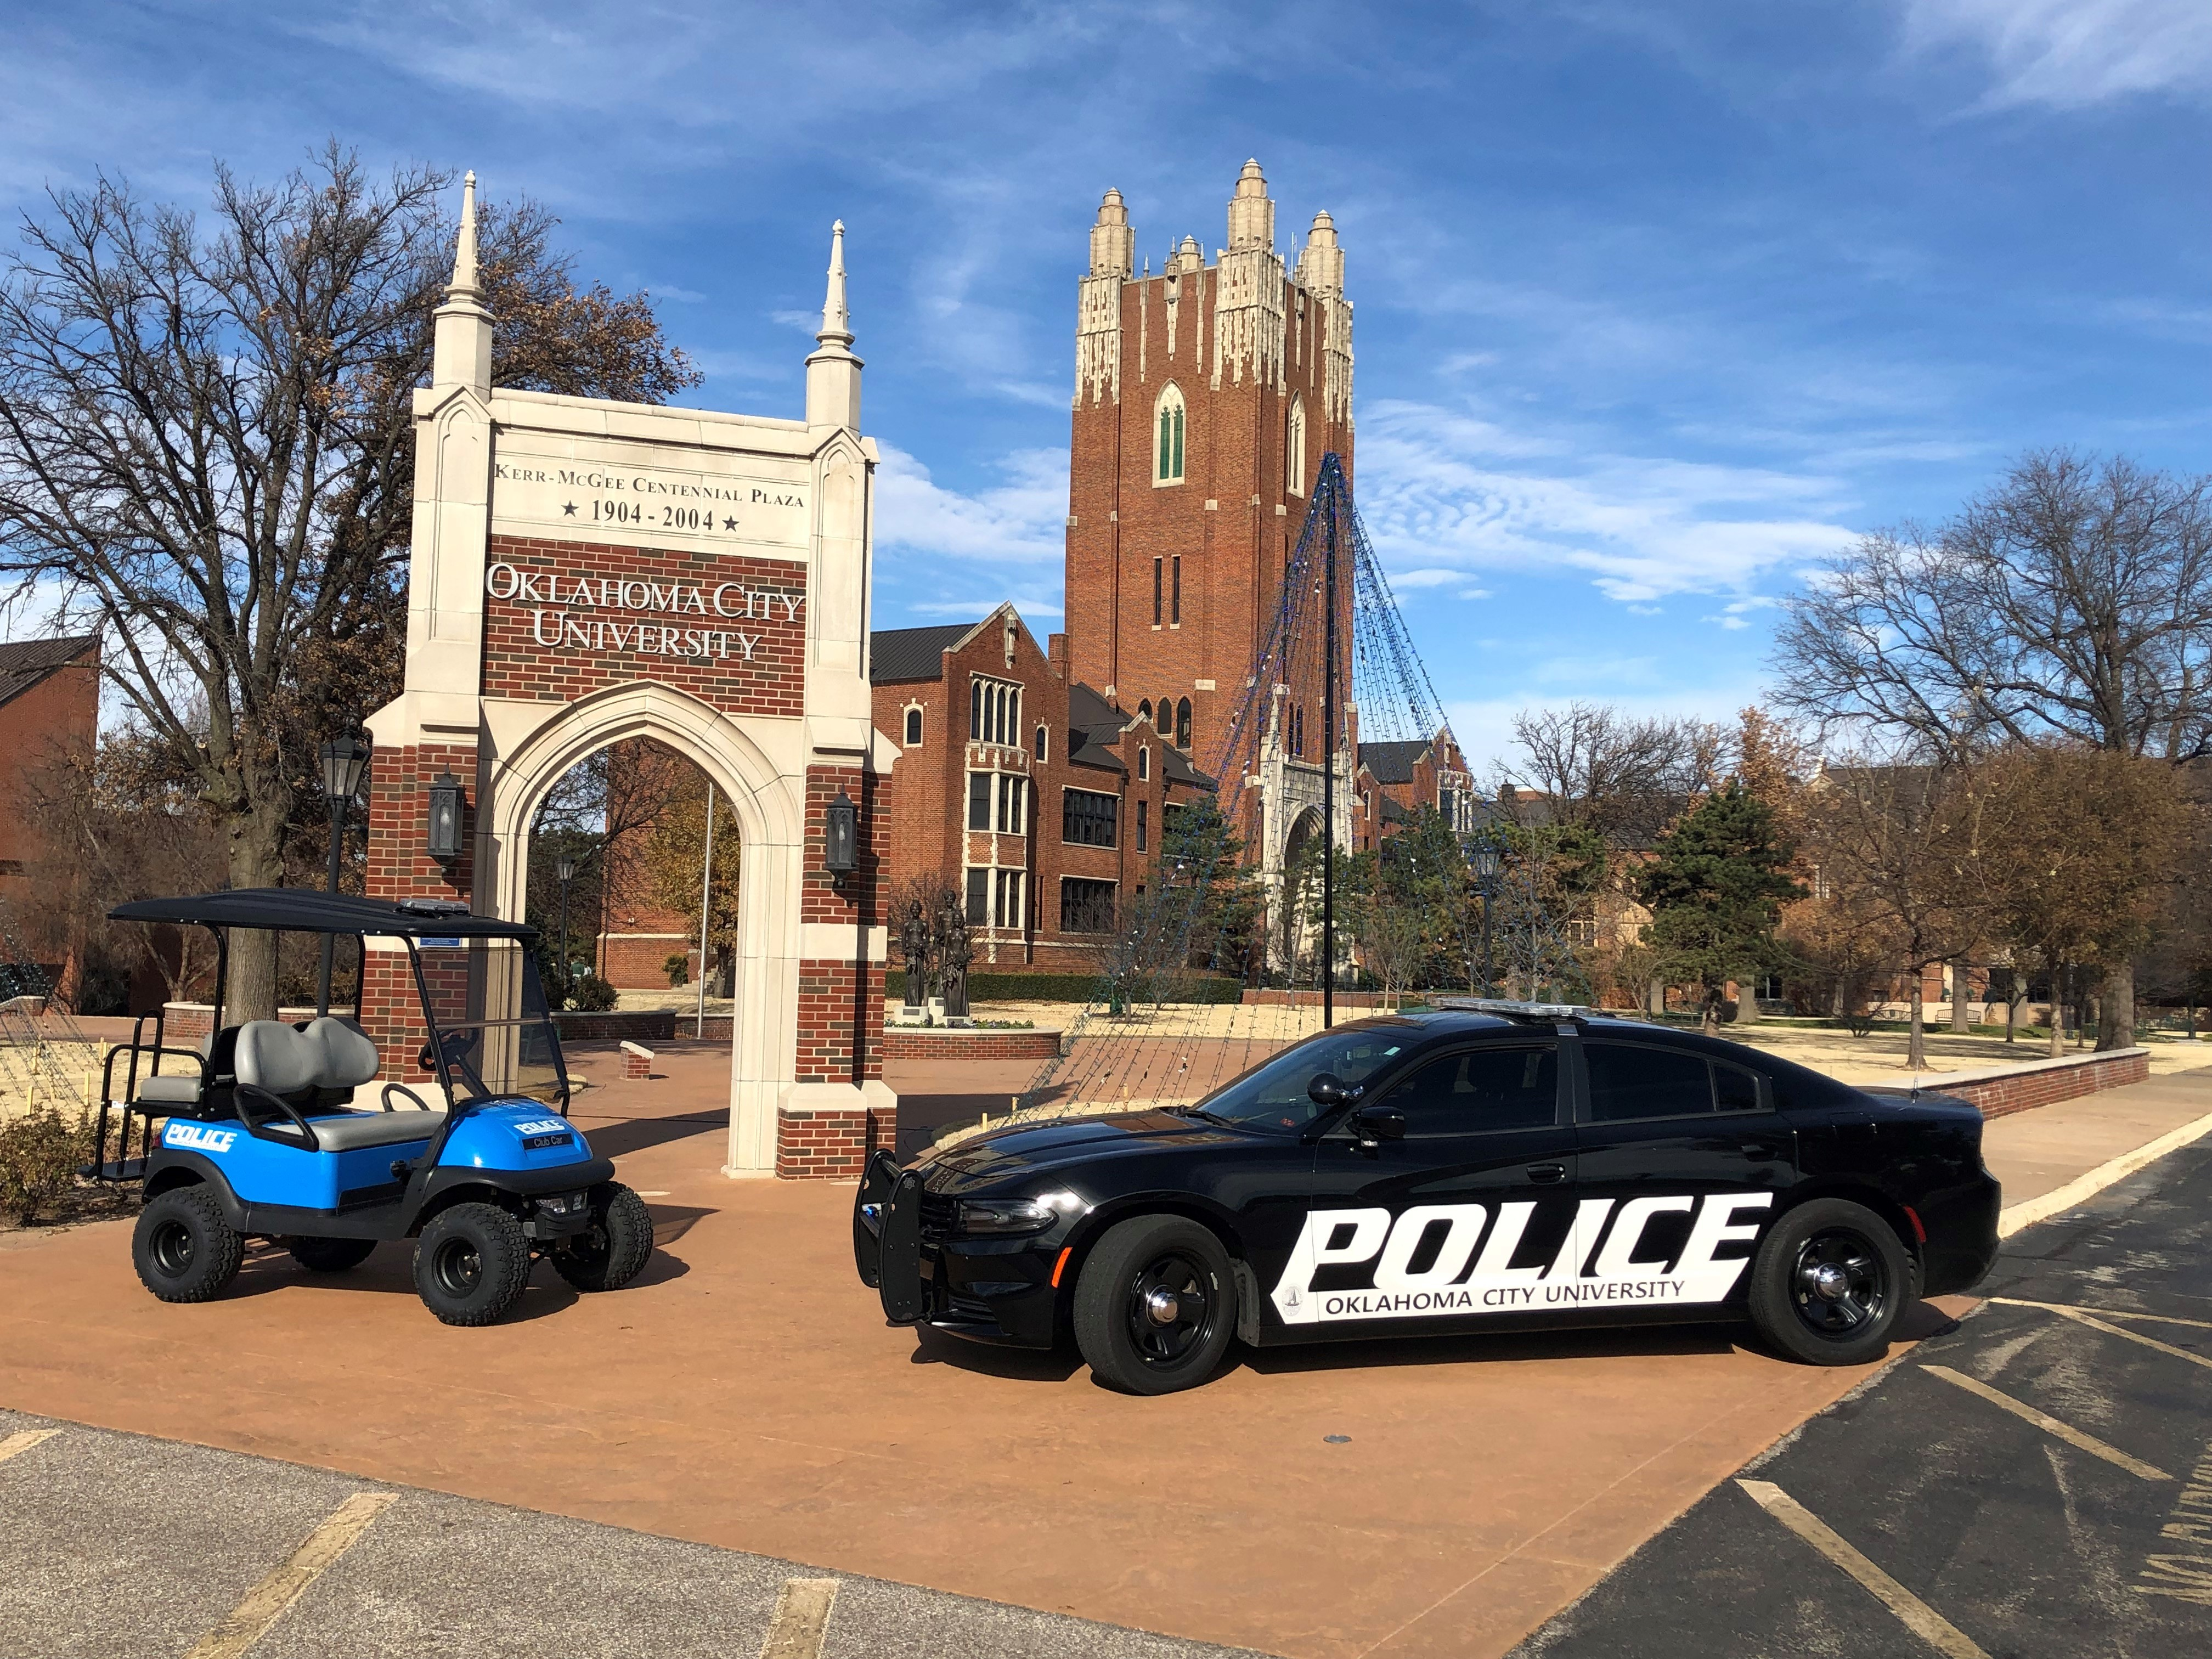 O C U P D vehicles are parked by the campus's entryway